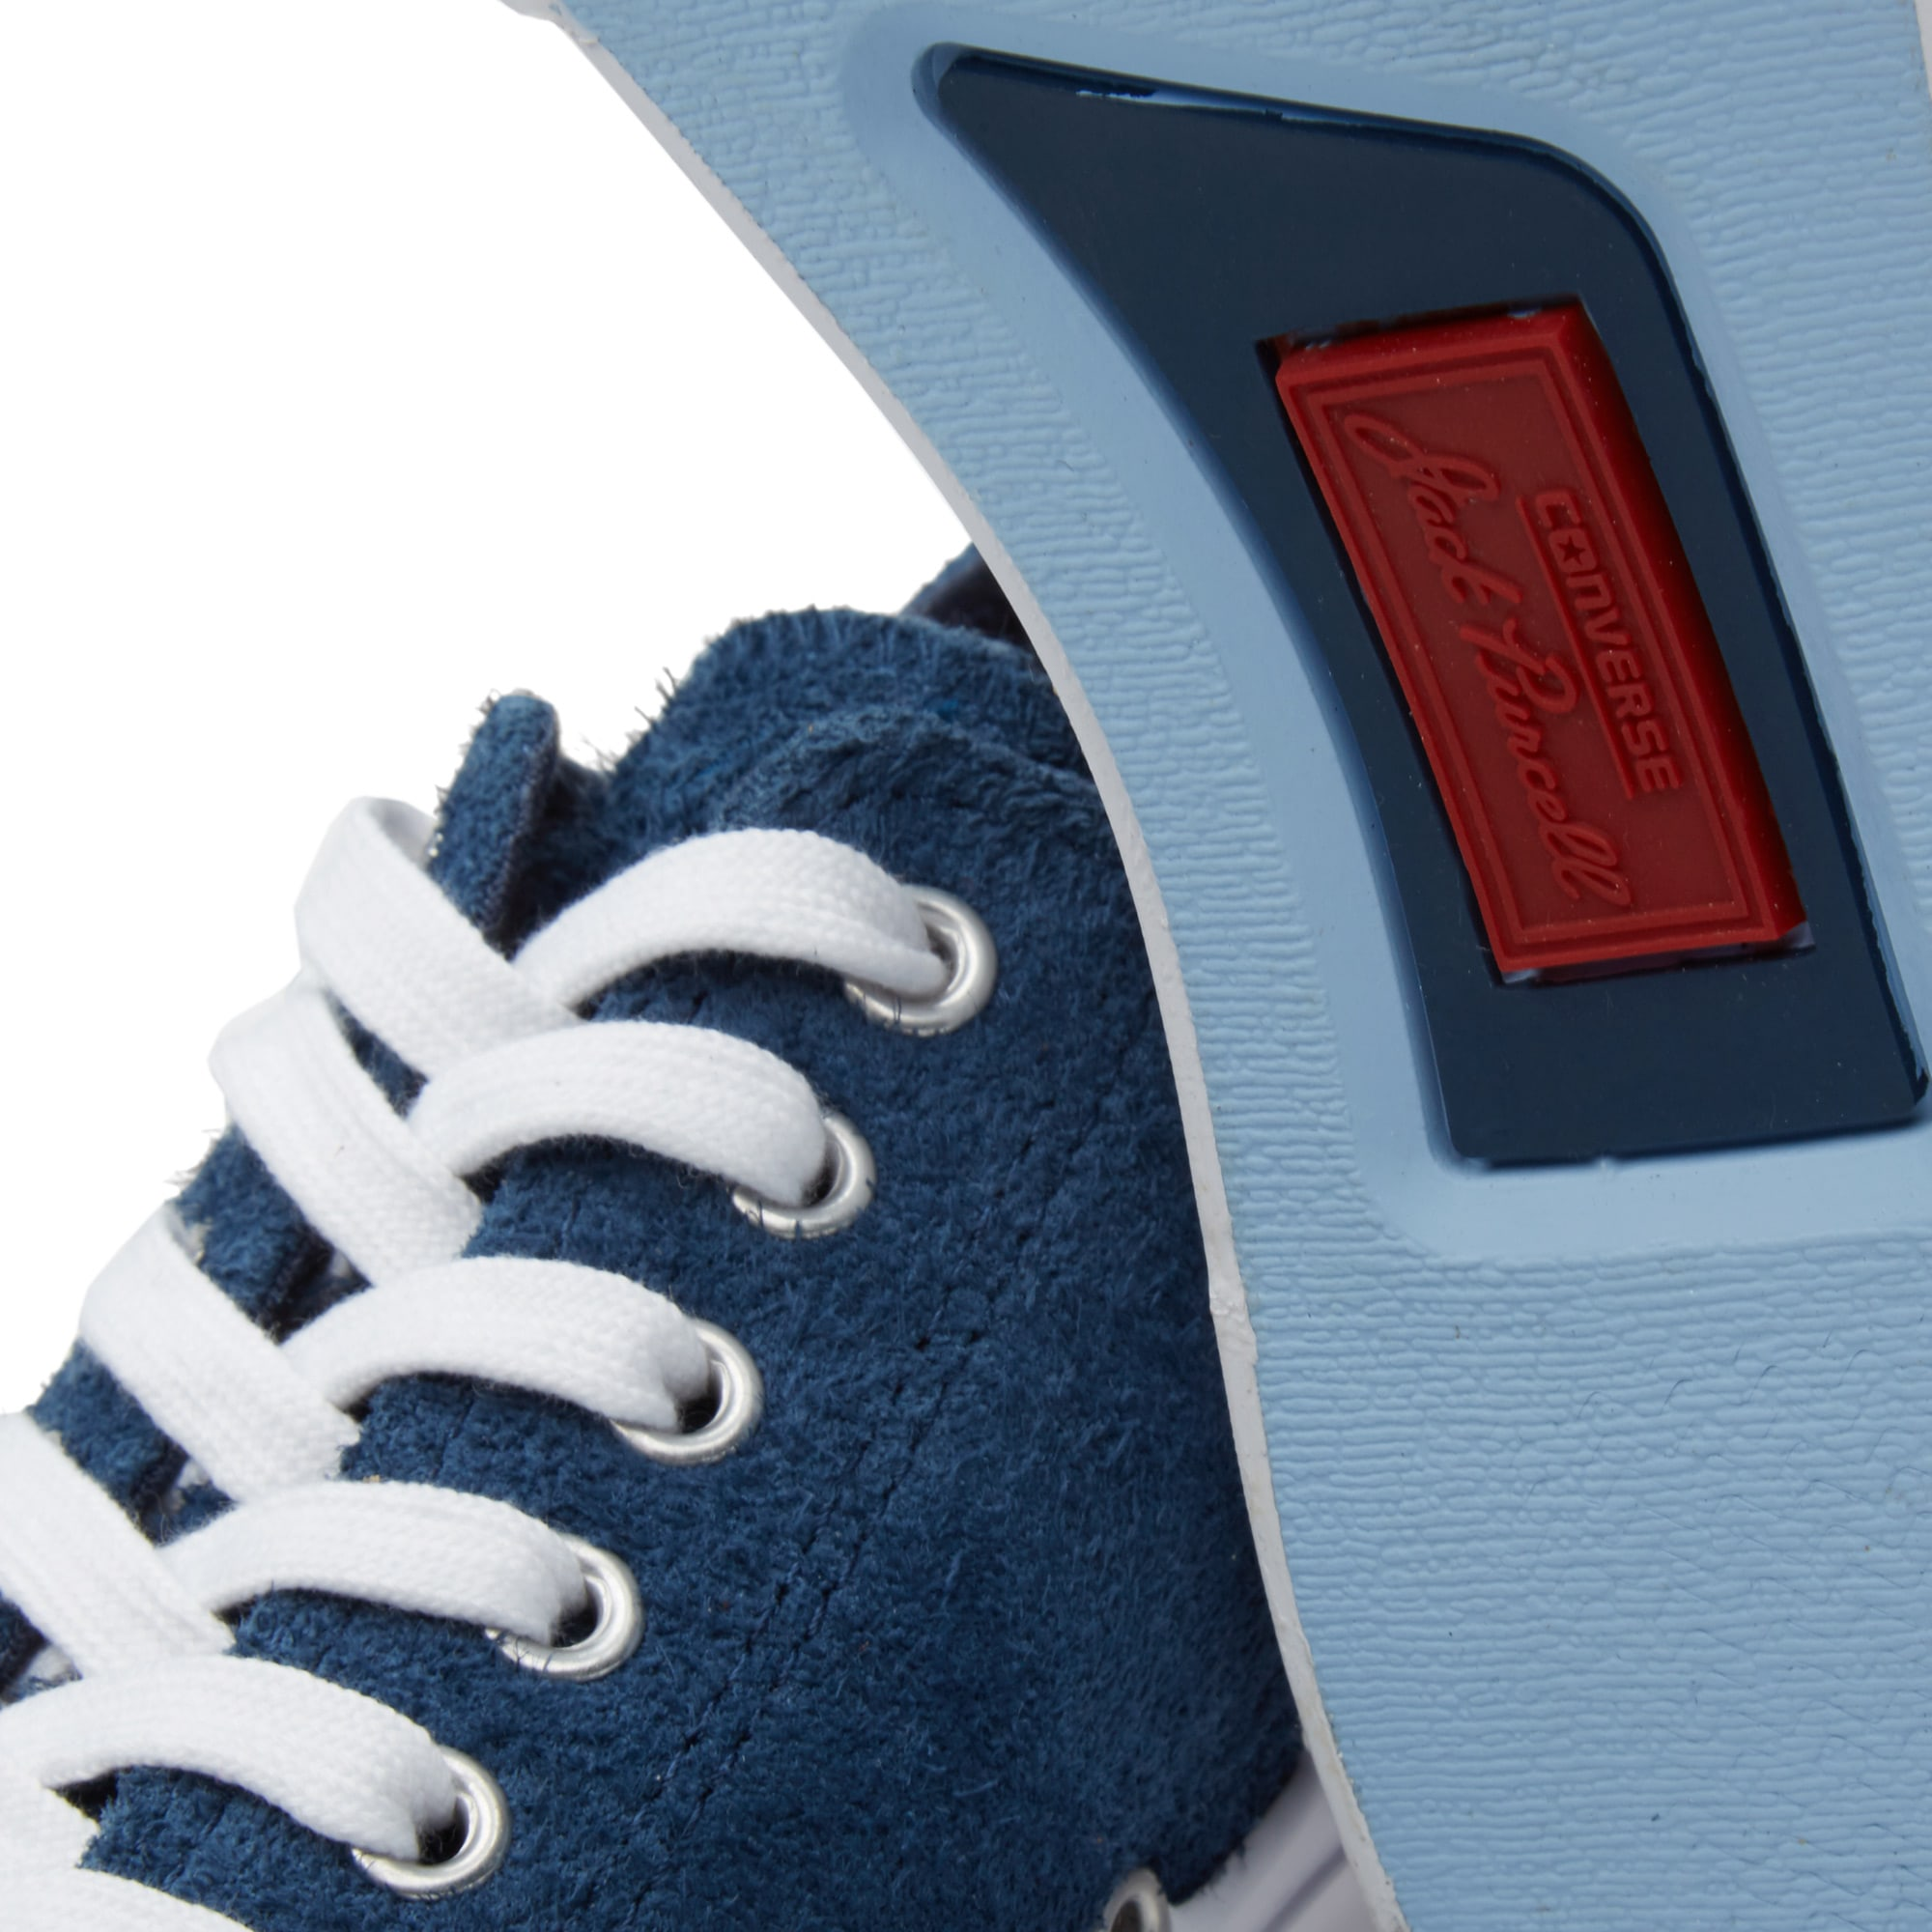 3960bcf09cf8 Converse Jack Purcell Suede Navy   White